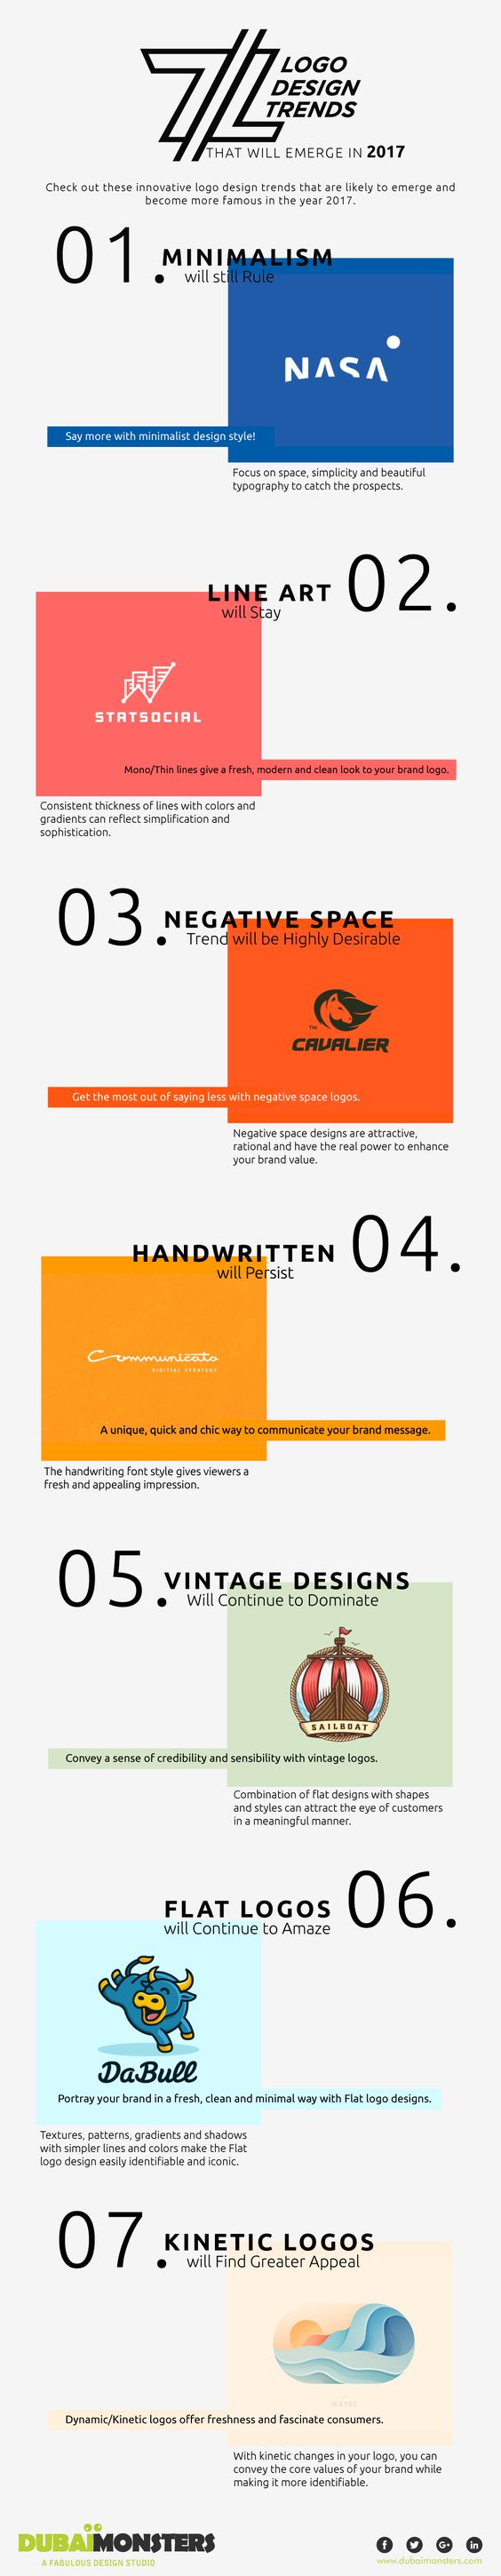 The best images about logo on pinterest